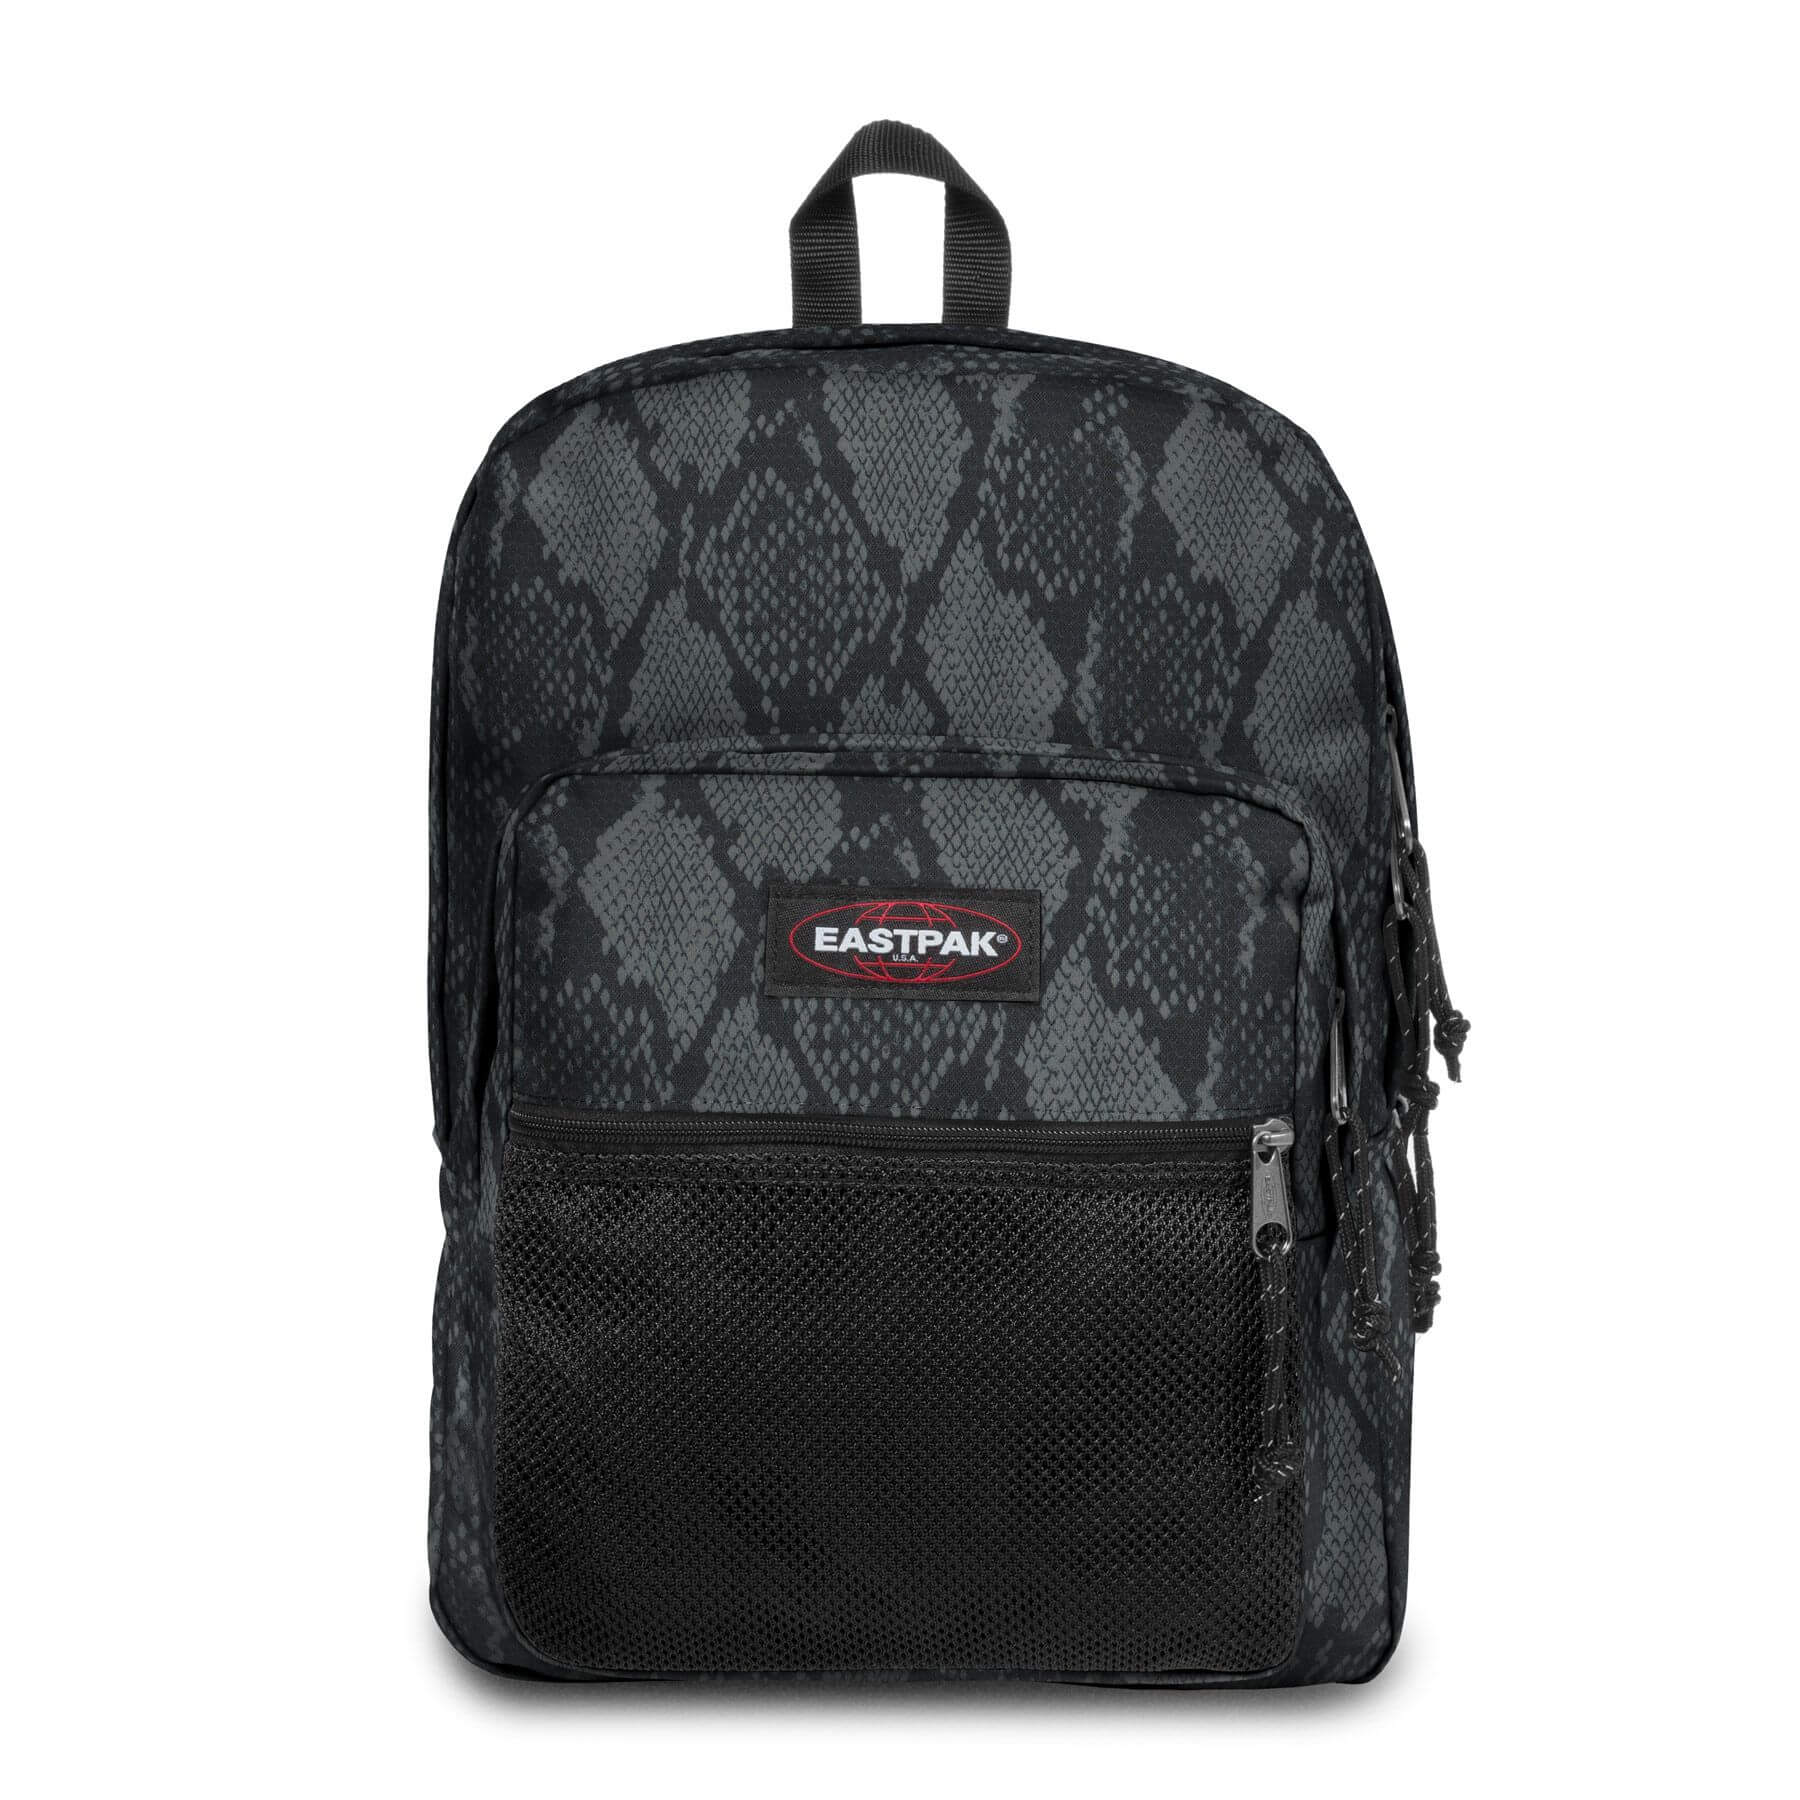 Eastpak Pinnacle Safari Snake